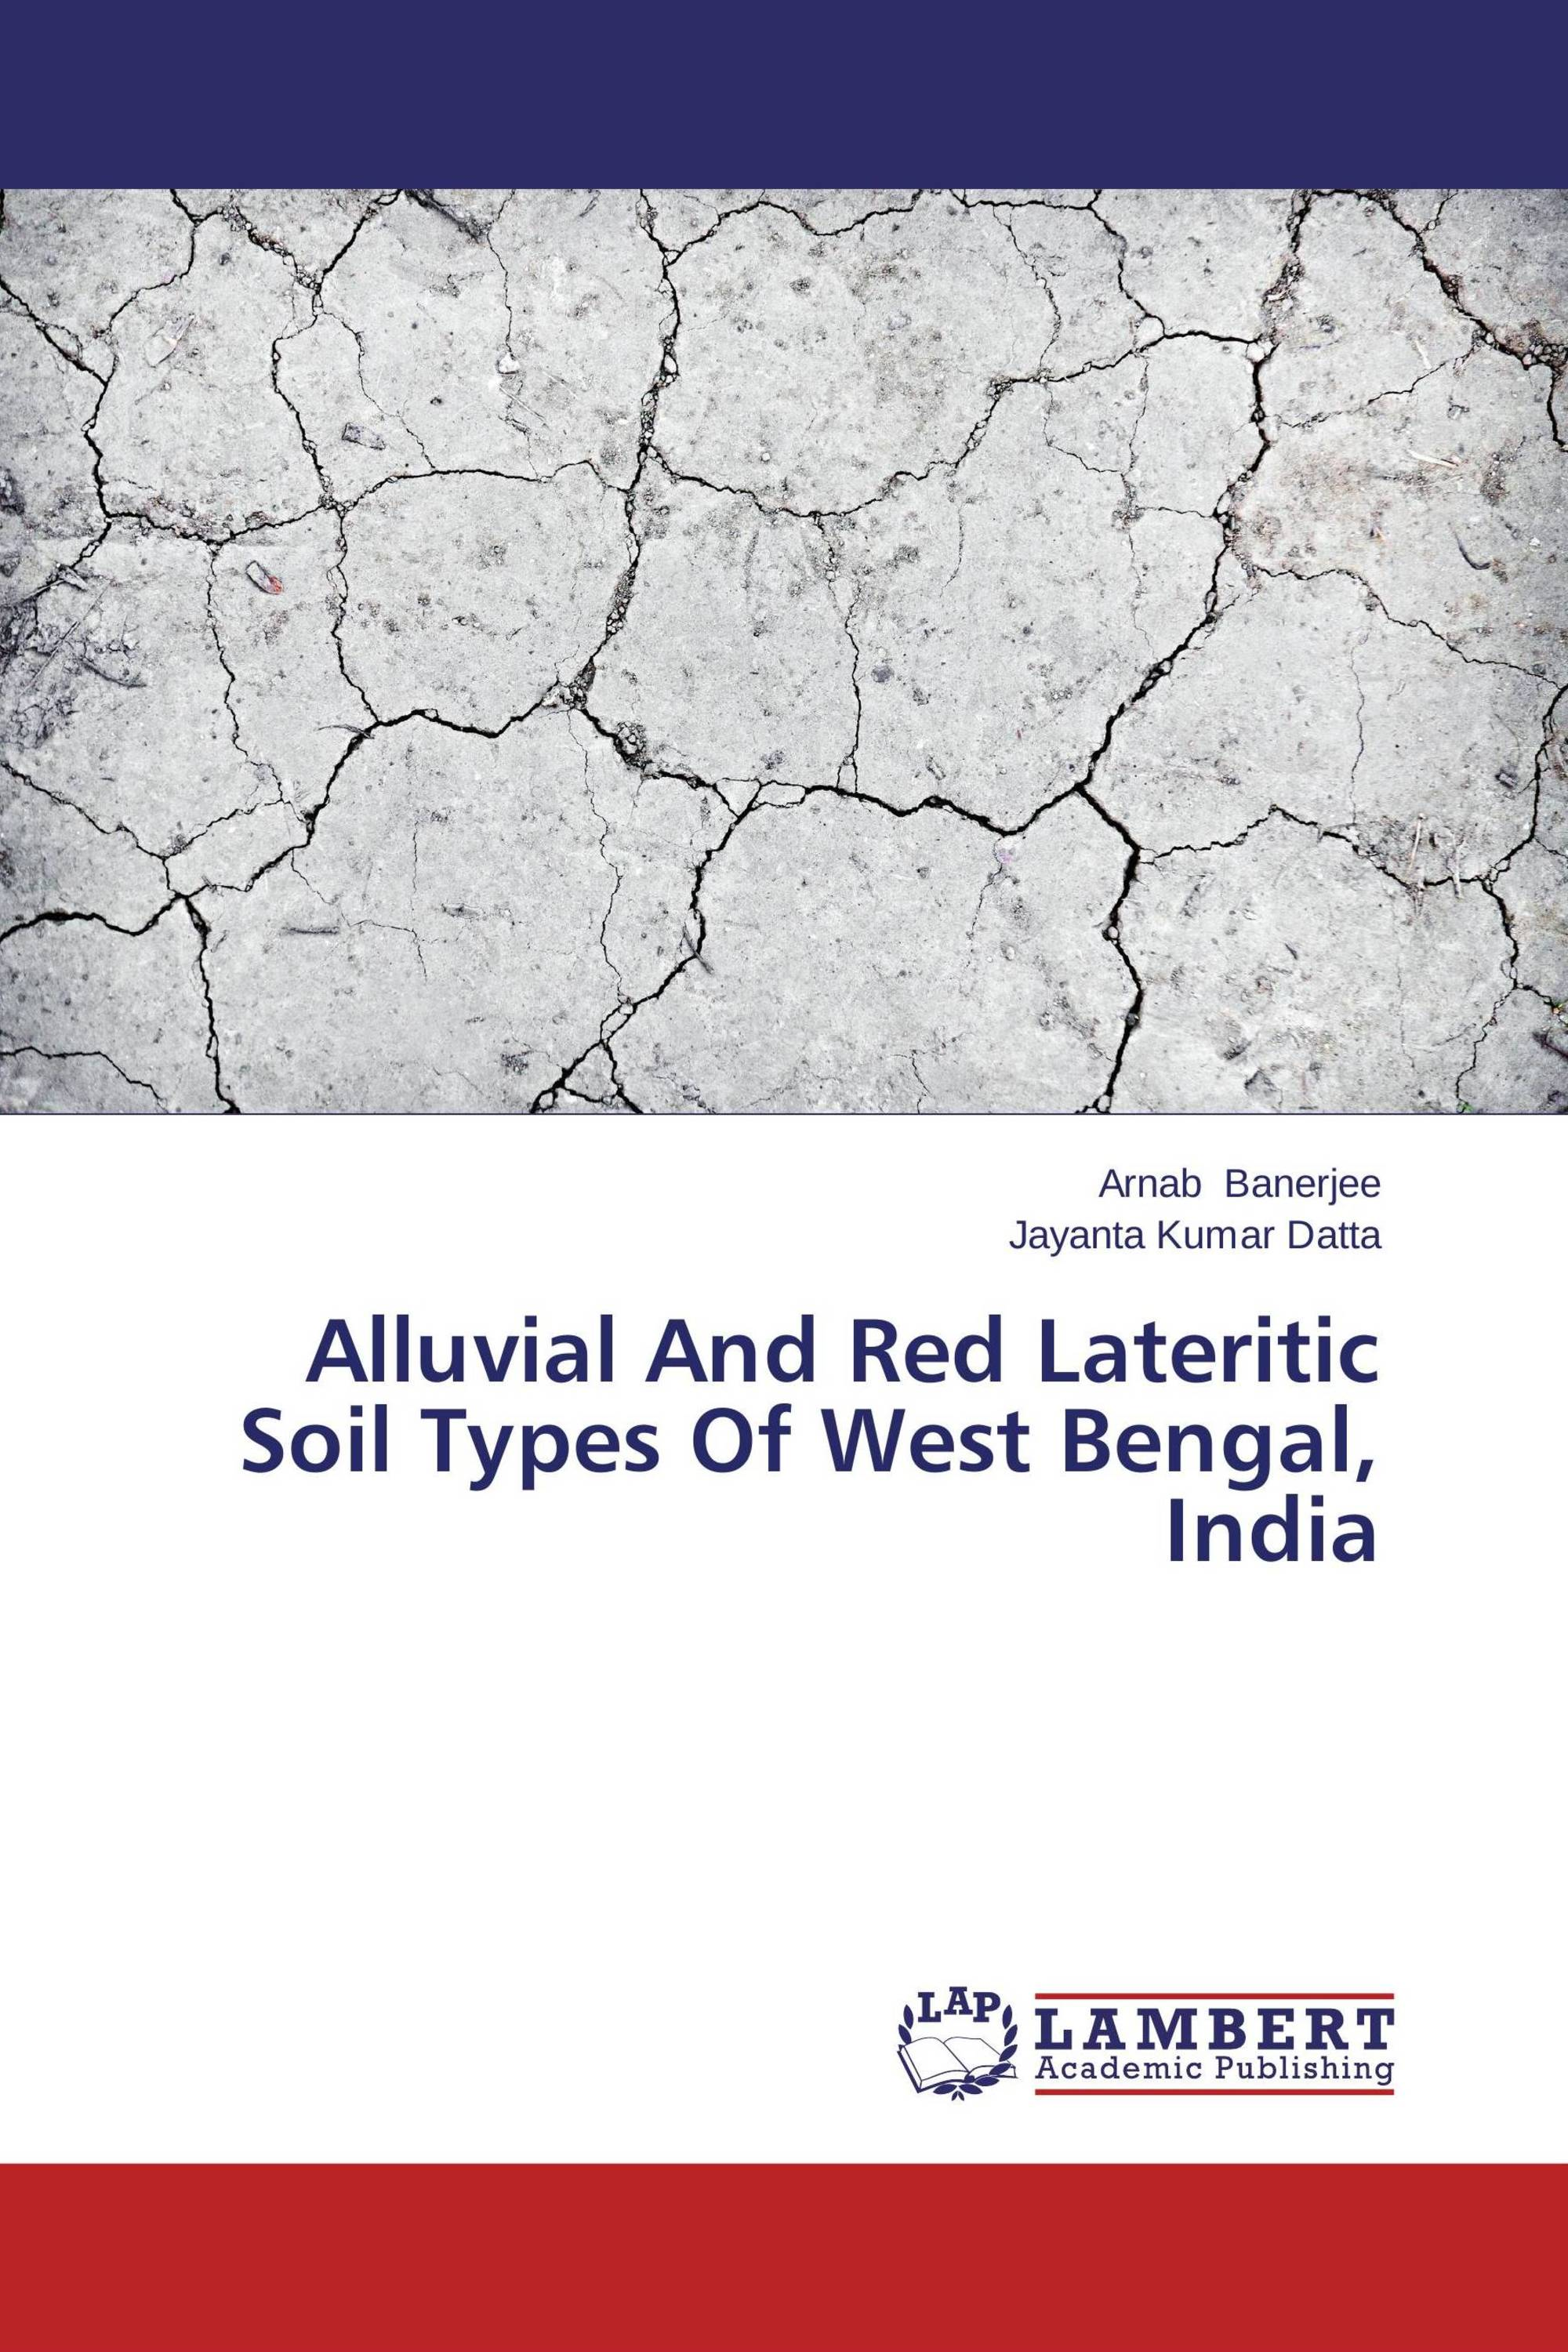 Alluvial and red lateritic soil types of west bengal for Different types of soil and their characteristics